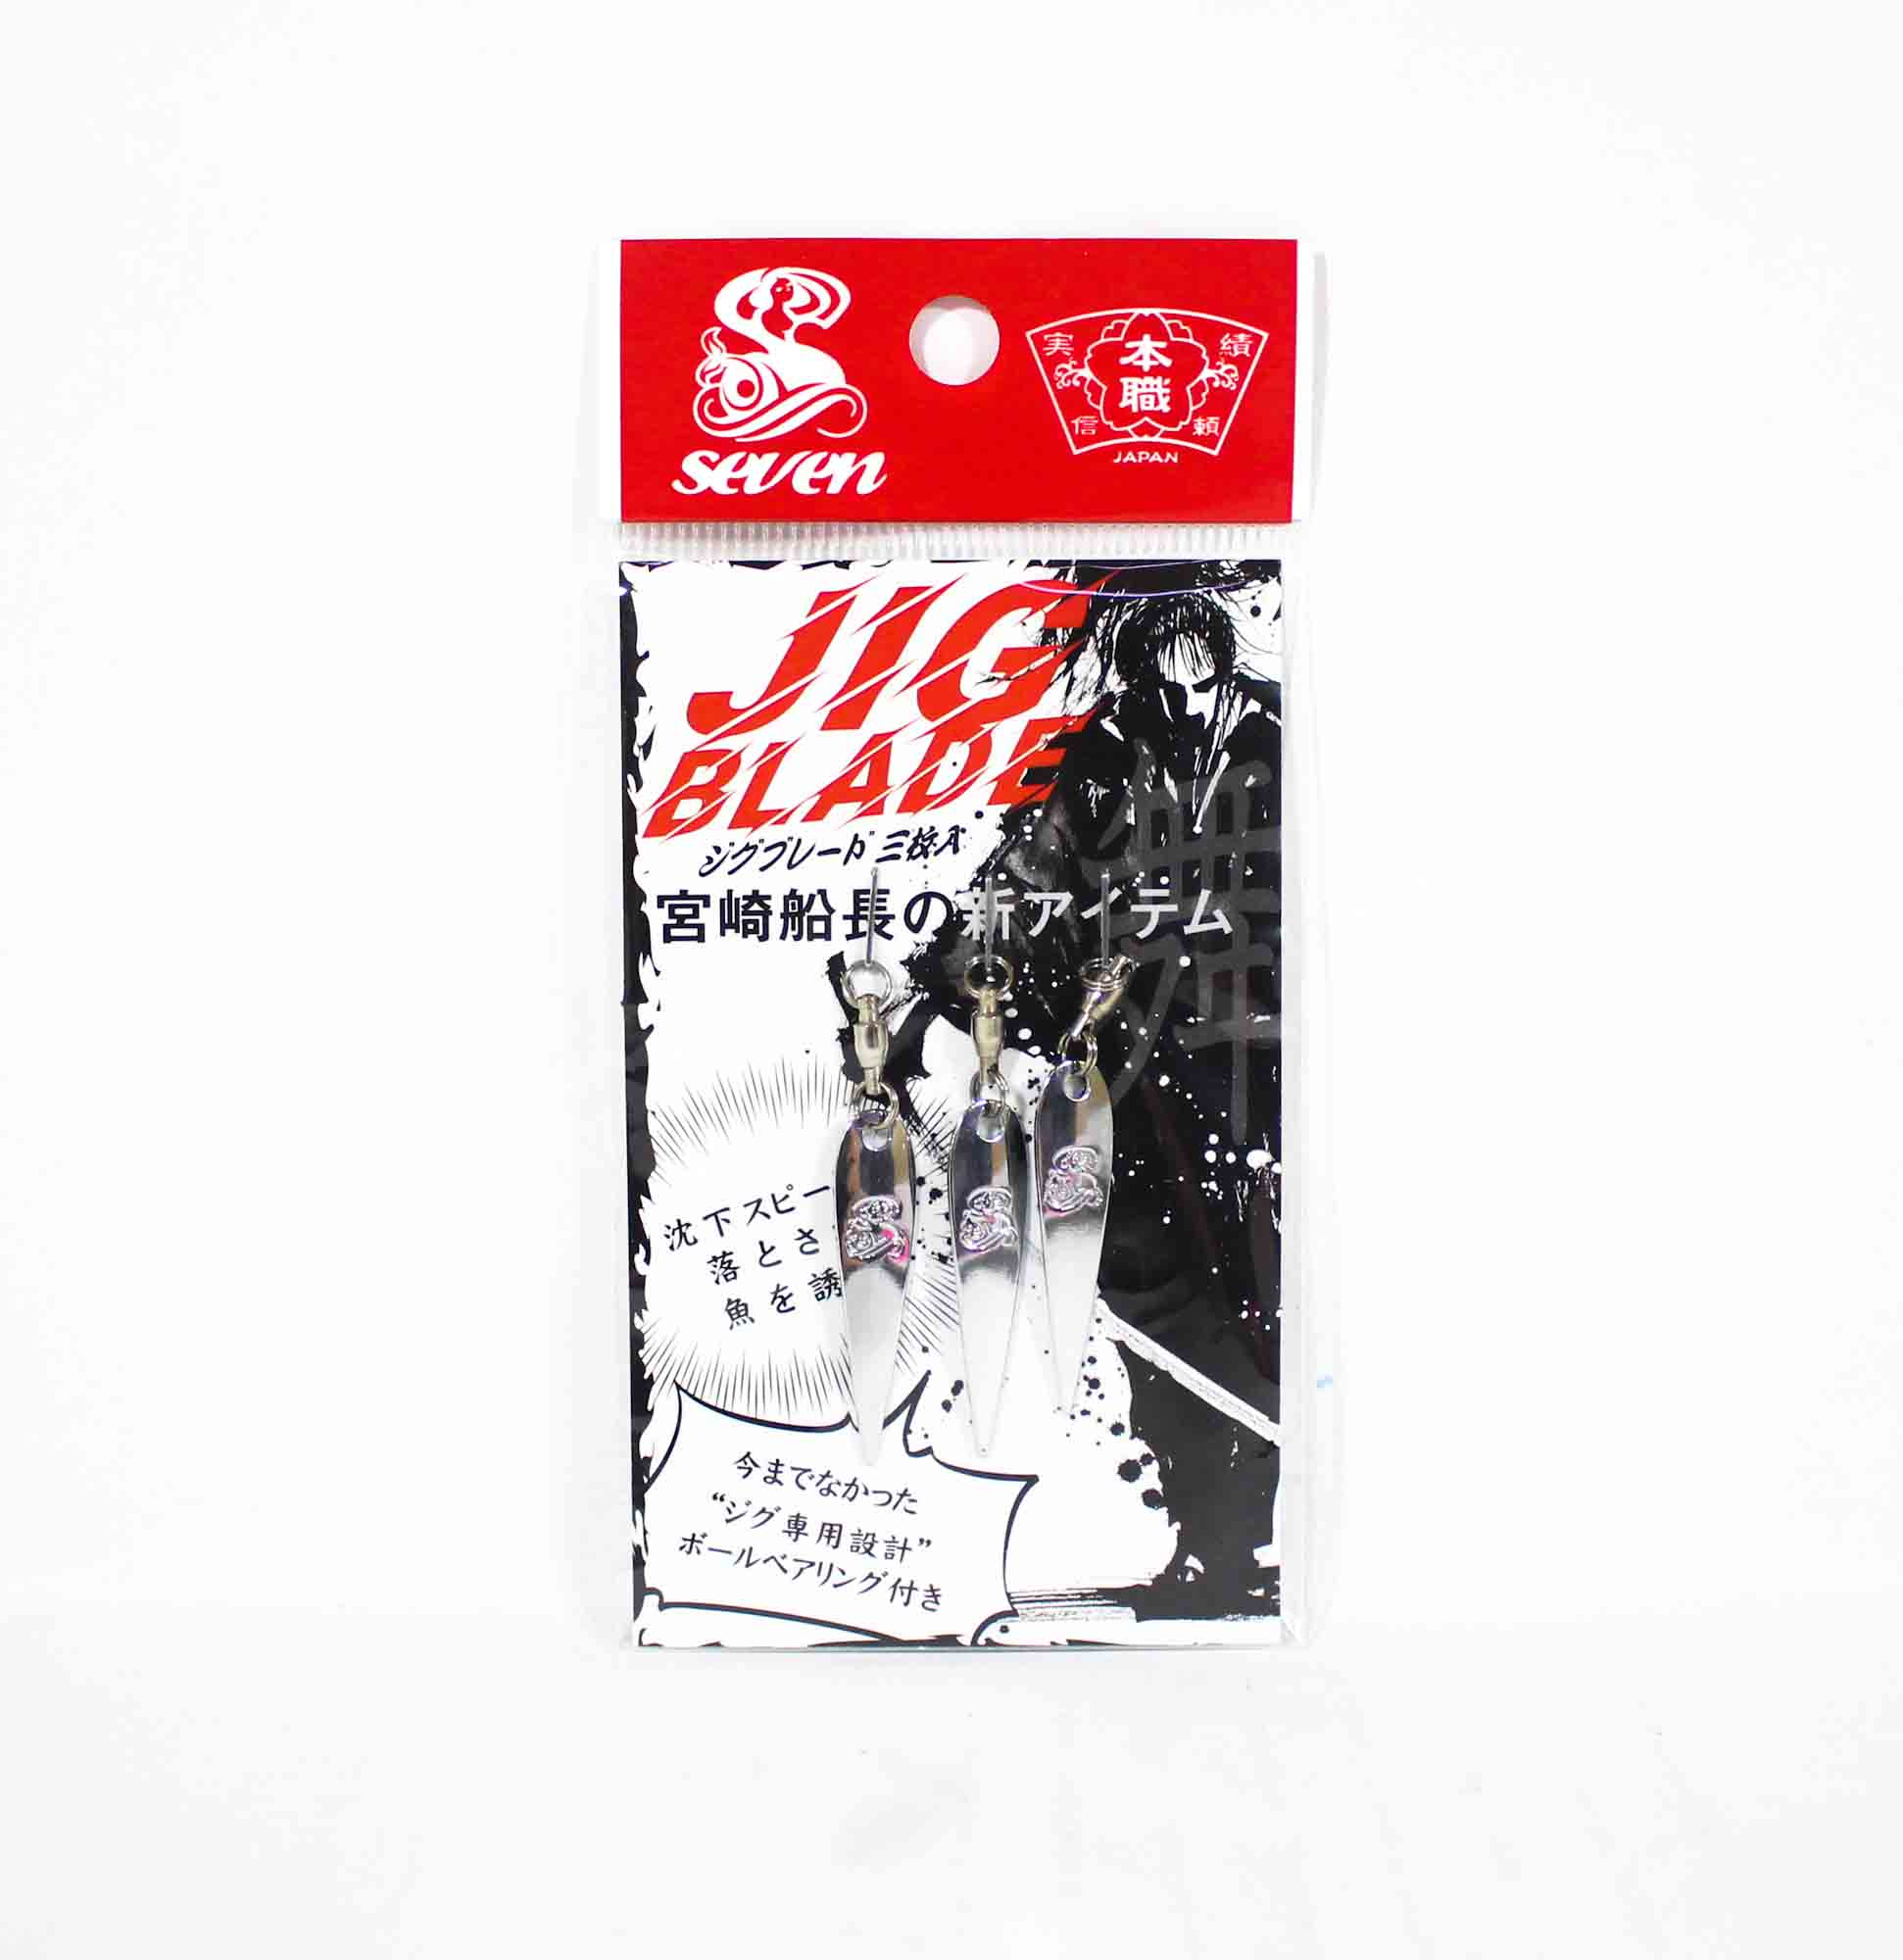 Seven Guide Service Jig Blade Size M 35mm Silver (7986)